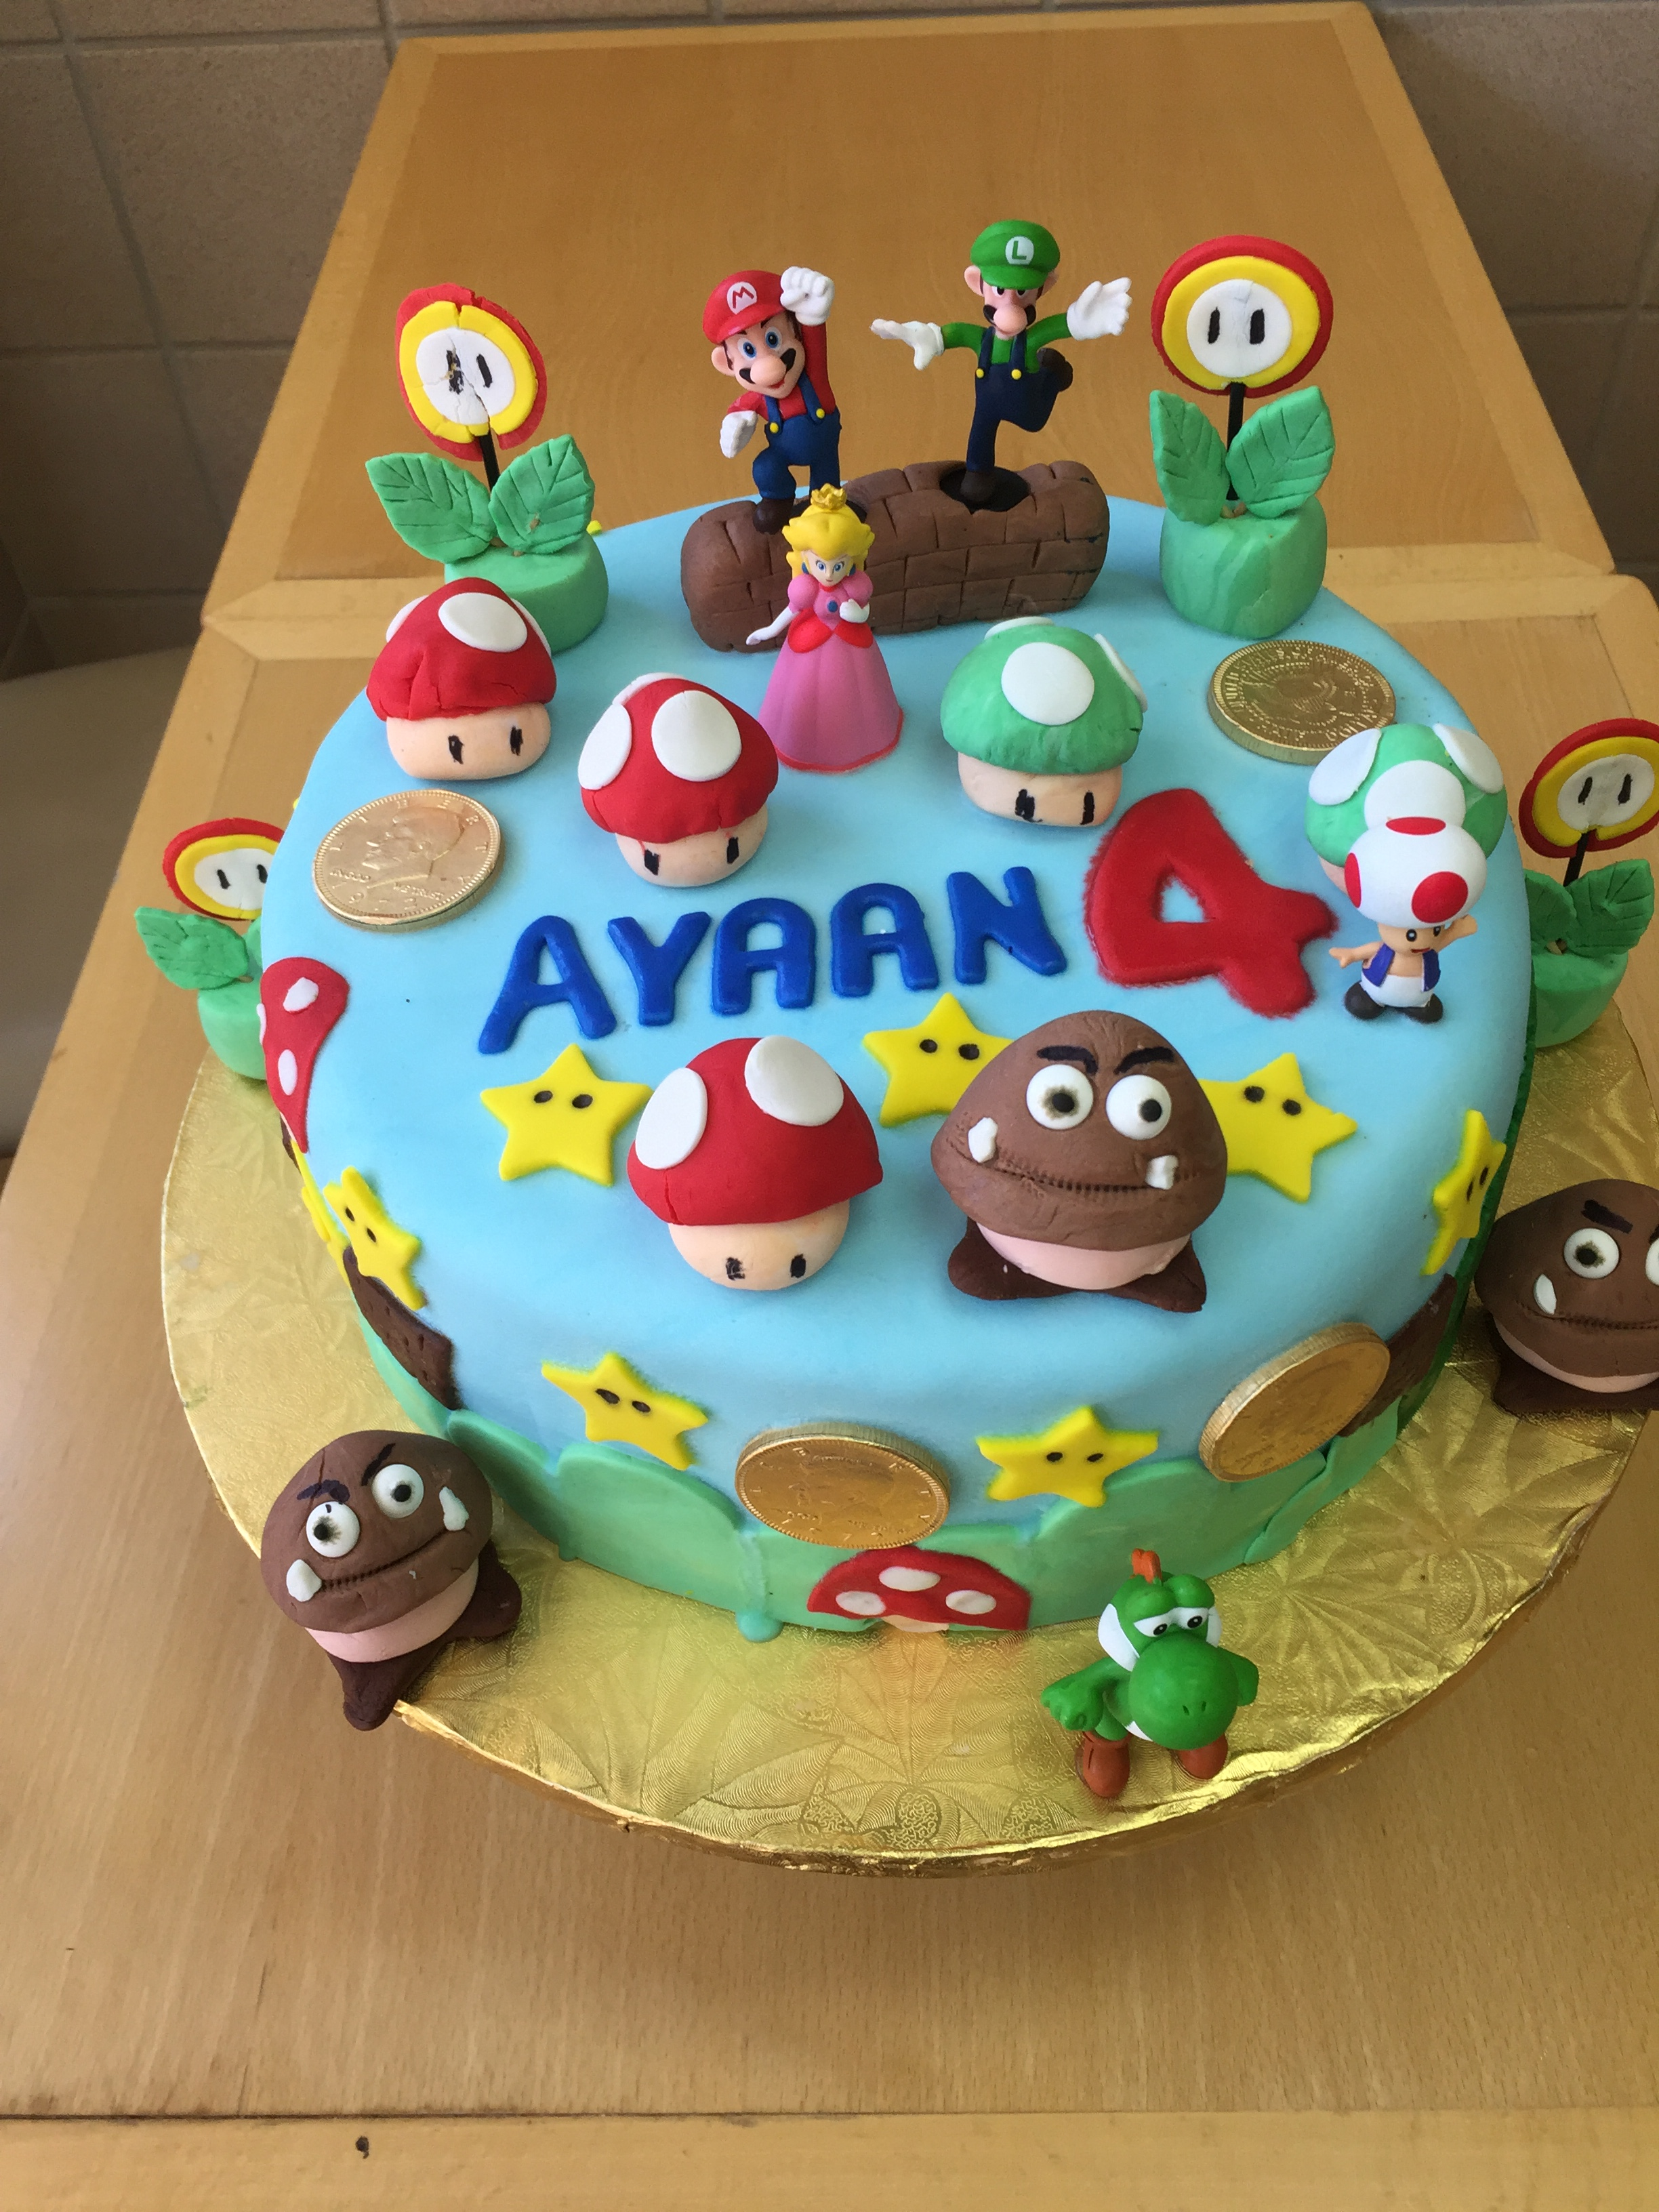 Superb Super Mario Brothers Birthday Cake Wild Berries Bakery And Cafe Funny Birthday Cards Online Bapapcheapnameinfo